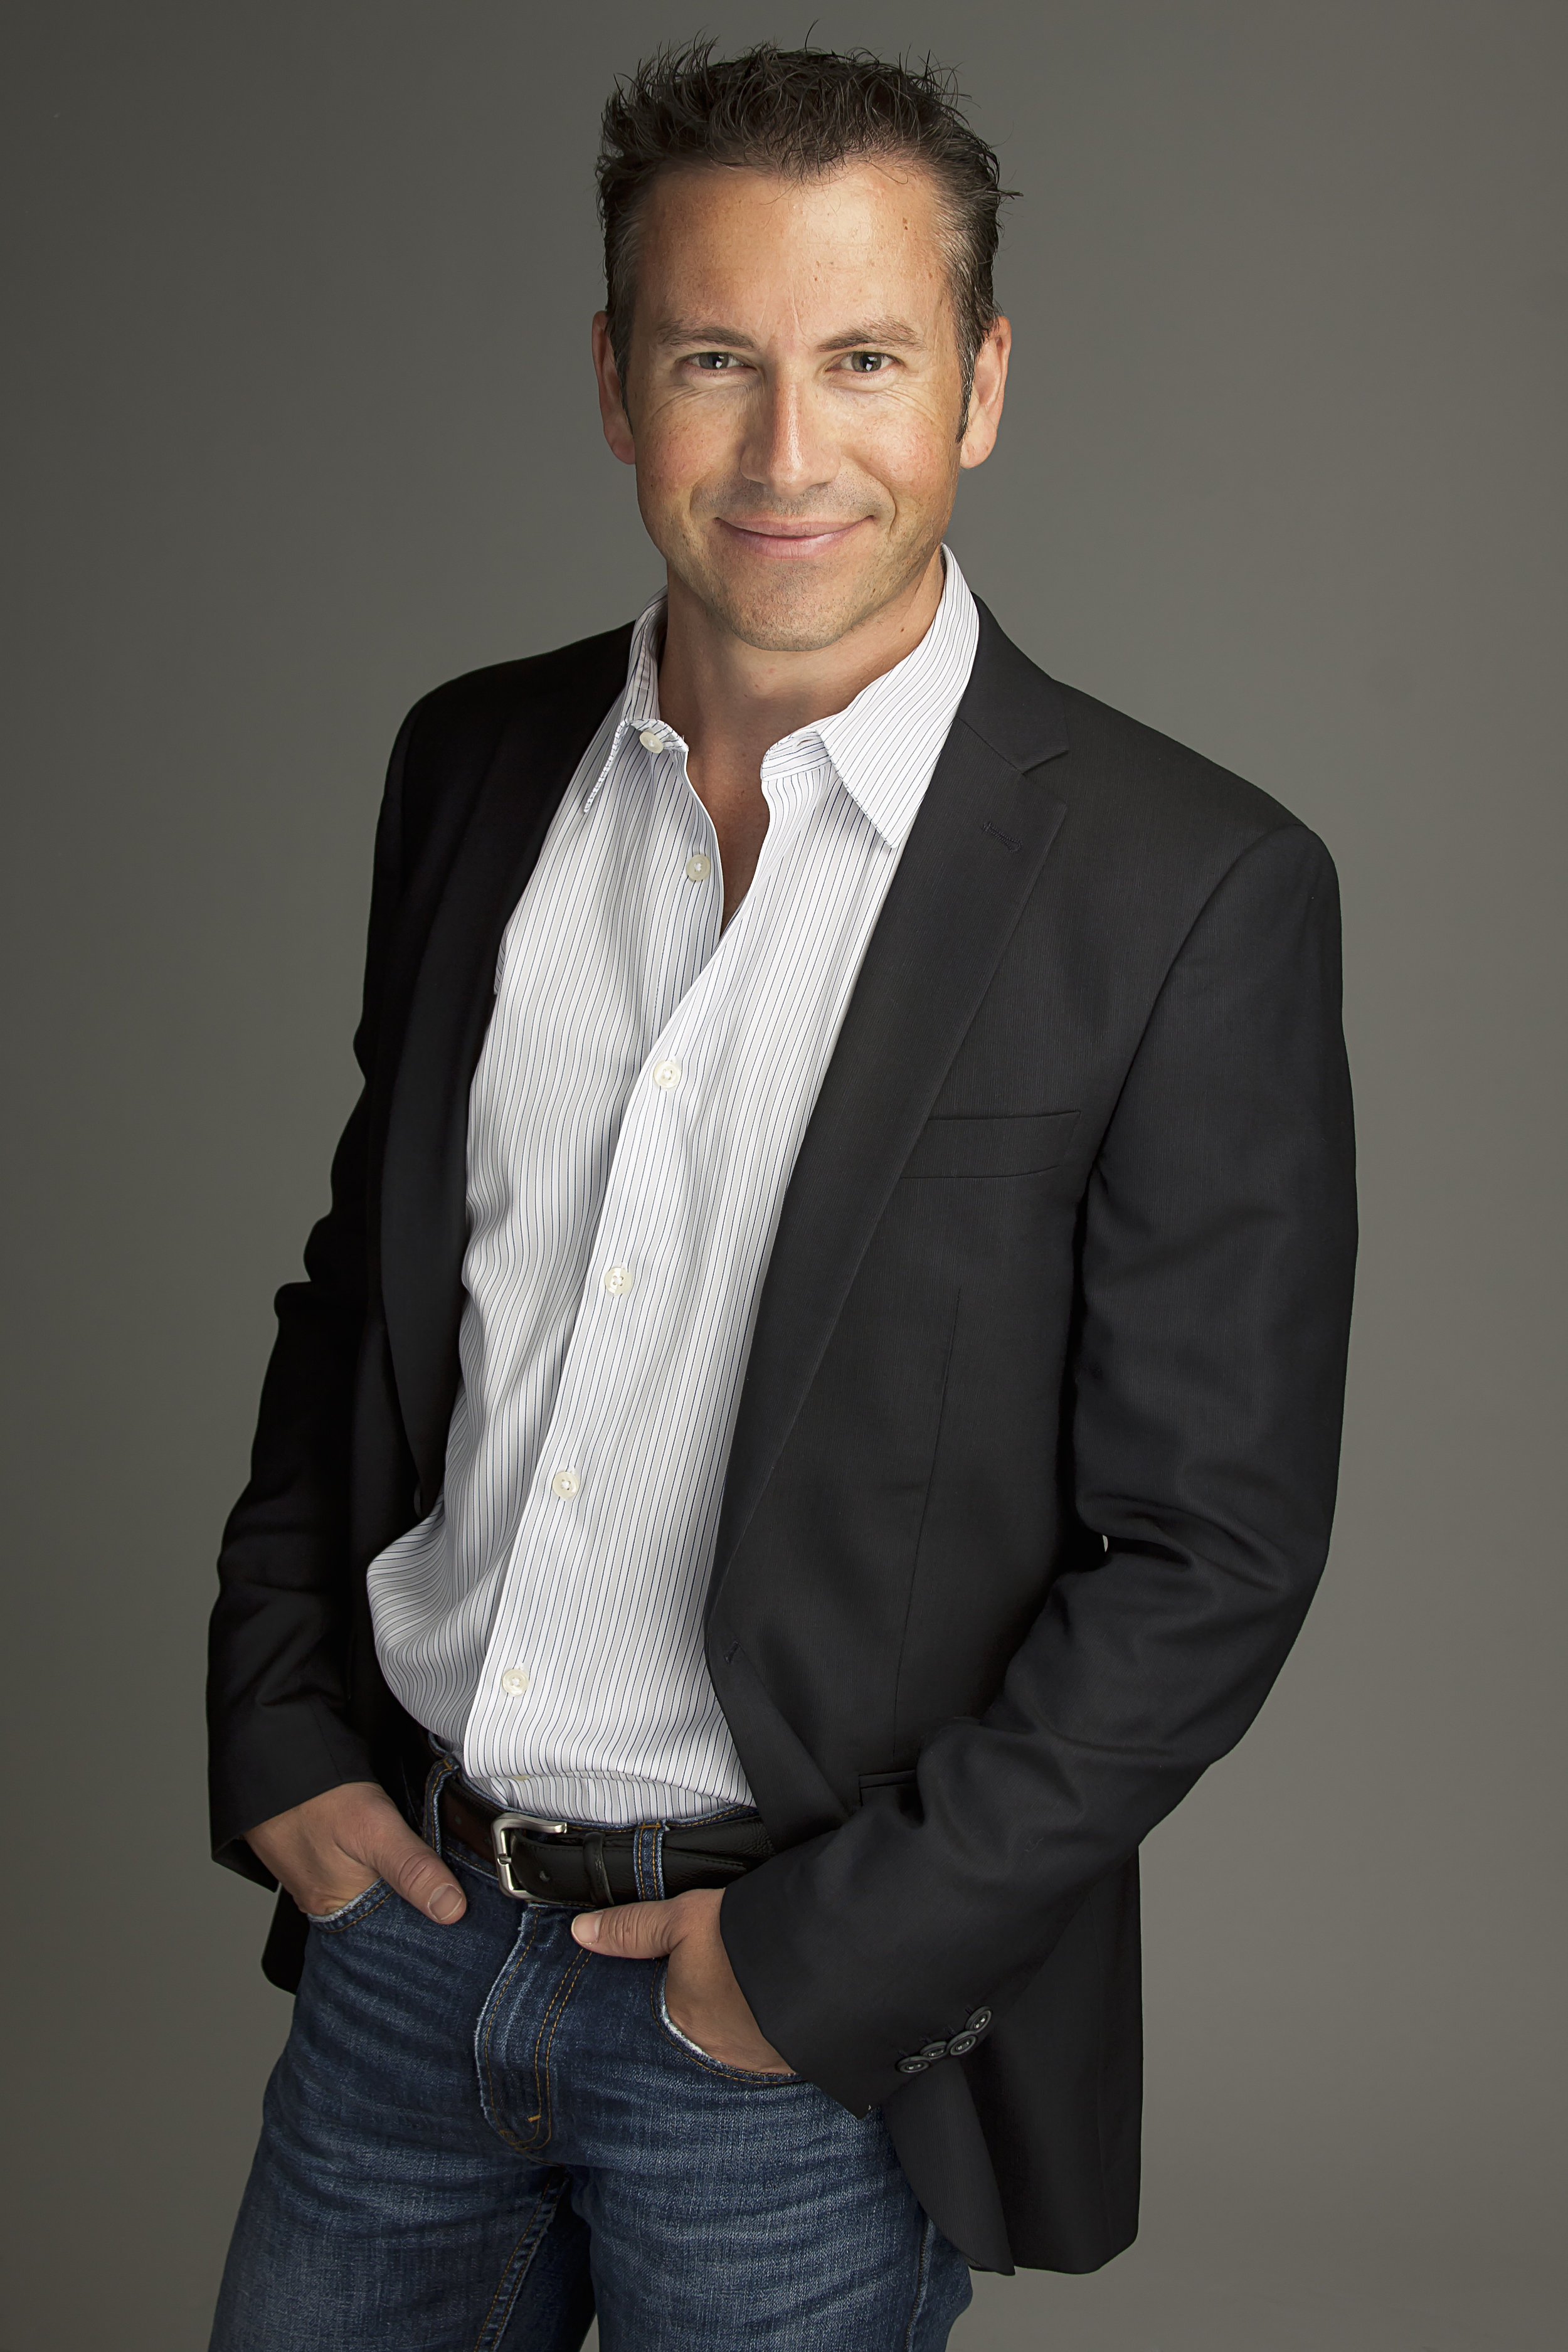 Andrew Ford Founder of Social Star, leader in personal branding, marketing expert, public speaker and author